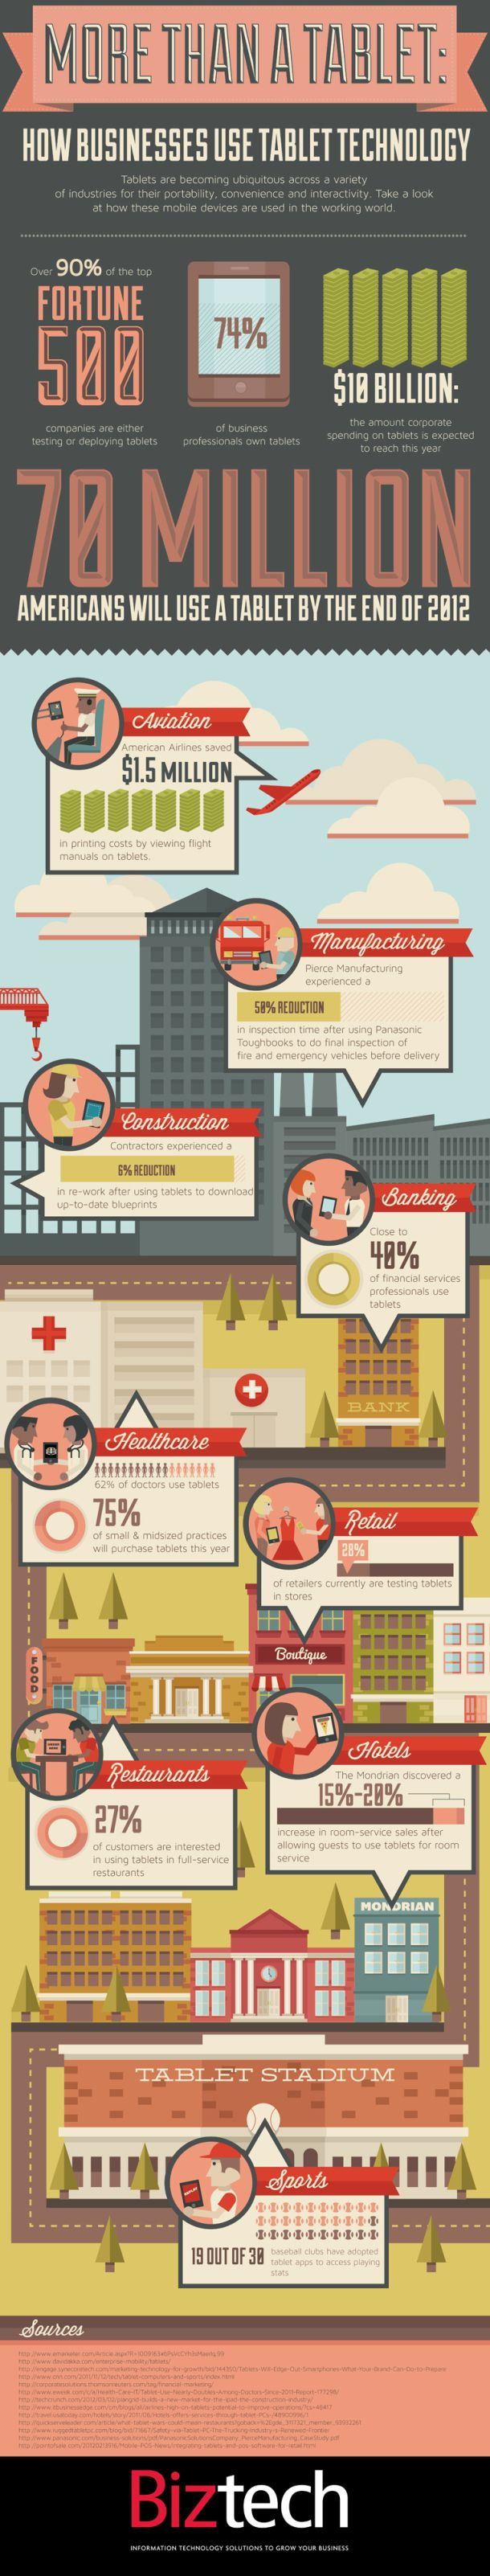 More Than a Tablet: How Businesses Use Tablet Technology [INFOGRAPHIC] #tablet#business